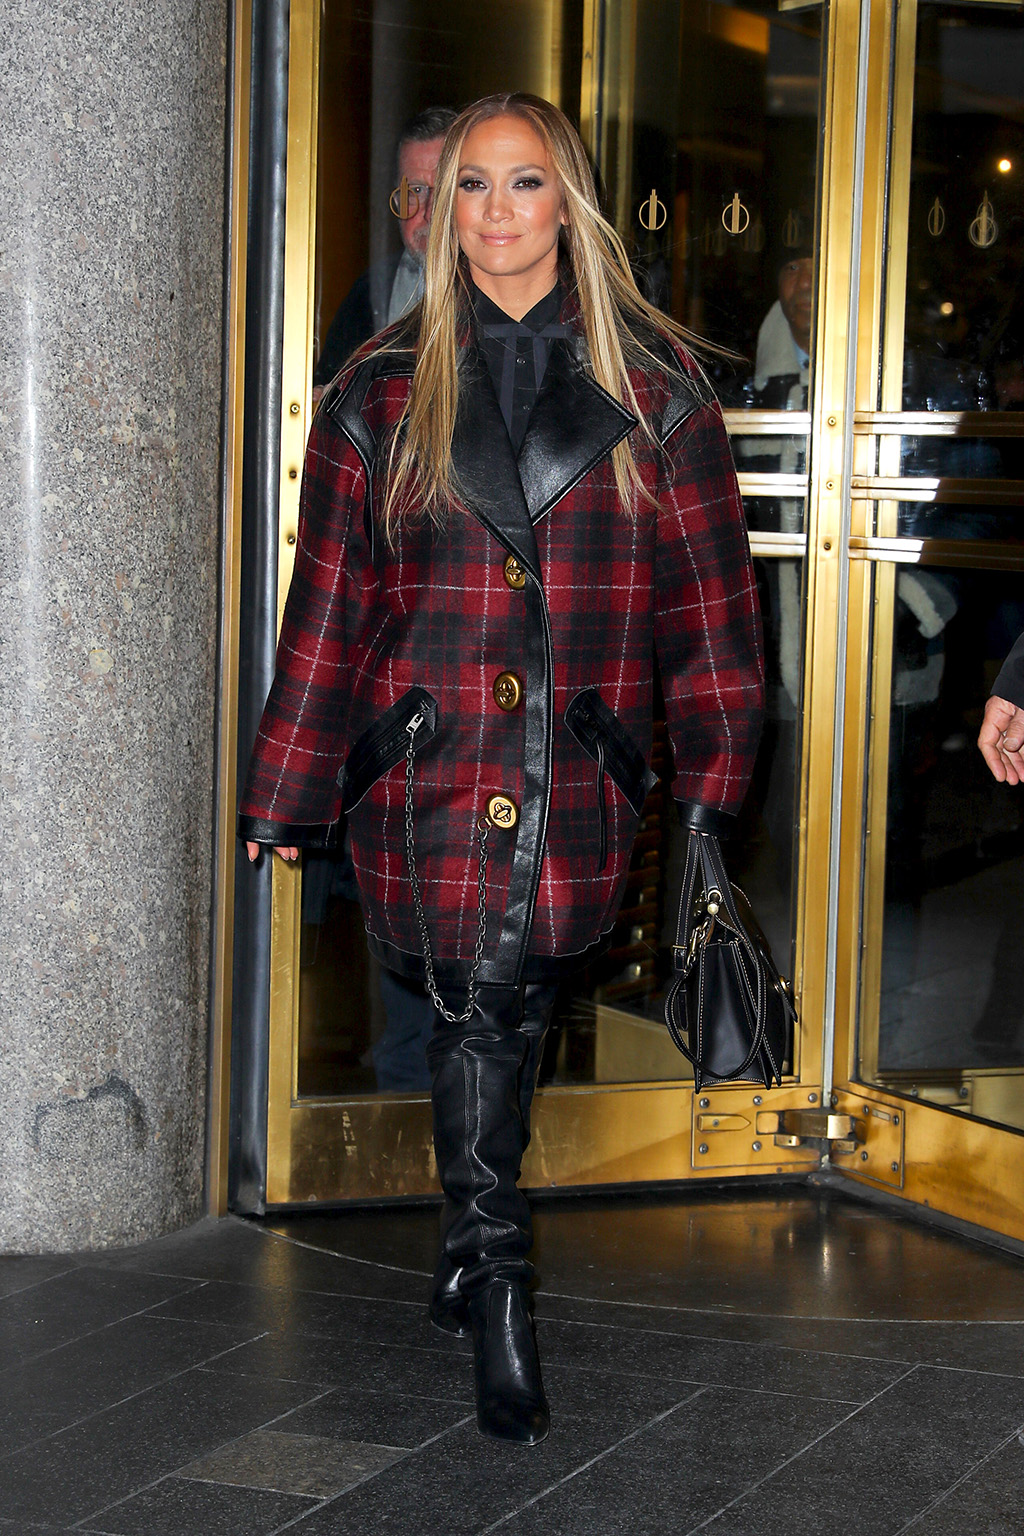 Jennifer Lopez, coach jacket, red tartan coat, stuart weitzman boots, celebrity style, thigh-high boots, nyc, street style, wears a stylish outfit while leaving the NBC studios in NYC, Jennifer wore a plaid jacket with leather high knee bootsPictured: Jennifer LopezRef: SPL5133248 031219 NON-EXCLUSIVEPicture by: Felipe Ramales / SplashNews.comSplash News and PicturesLos Angeles: 310-821-2666New York: 212-619-2666London: +44 (0)20 7644 7656Berlin: +49 175 3764 166photodesk@splashnews.comWorld Rights